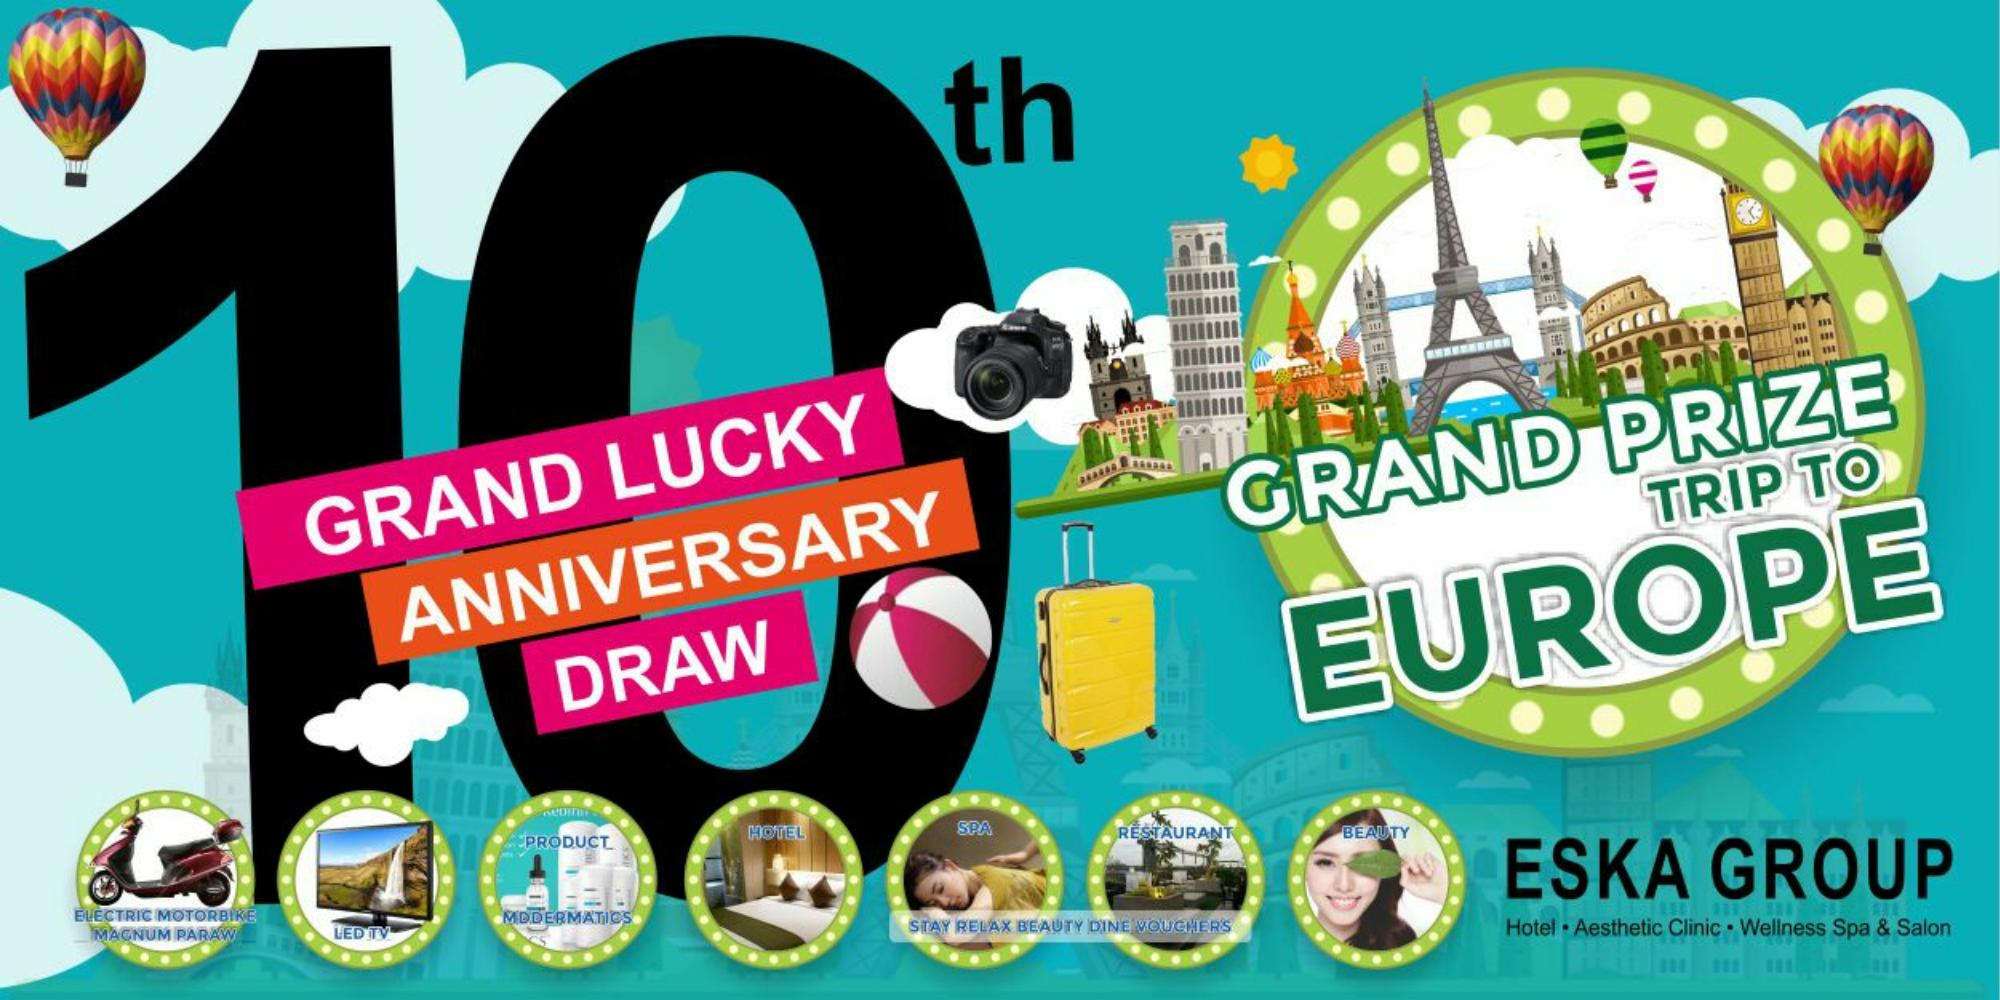 eska group batam 1804-promo-10th-grand-lucky-anniversary-draw